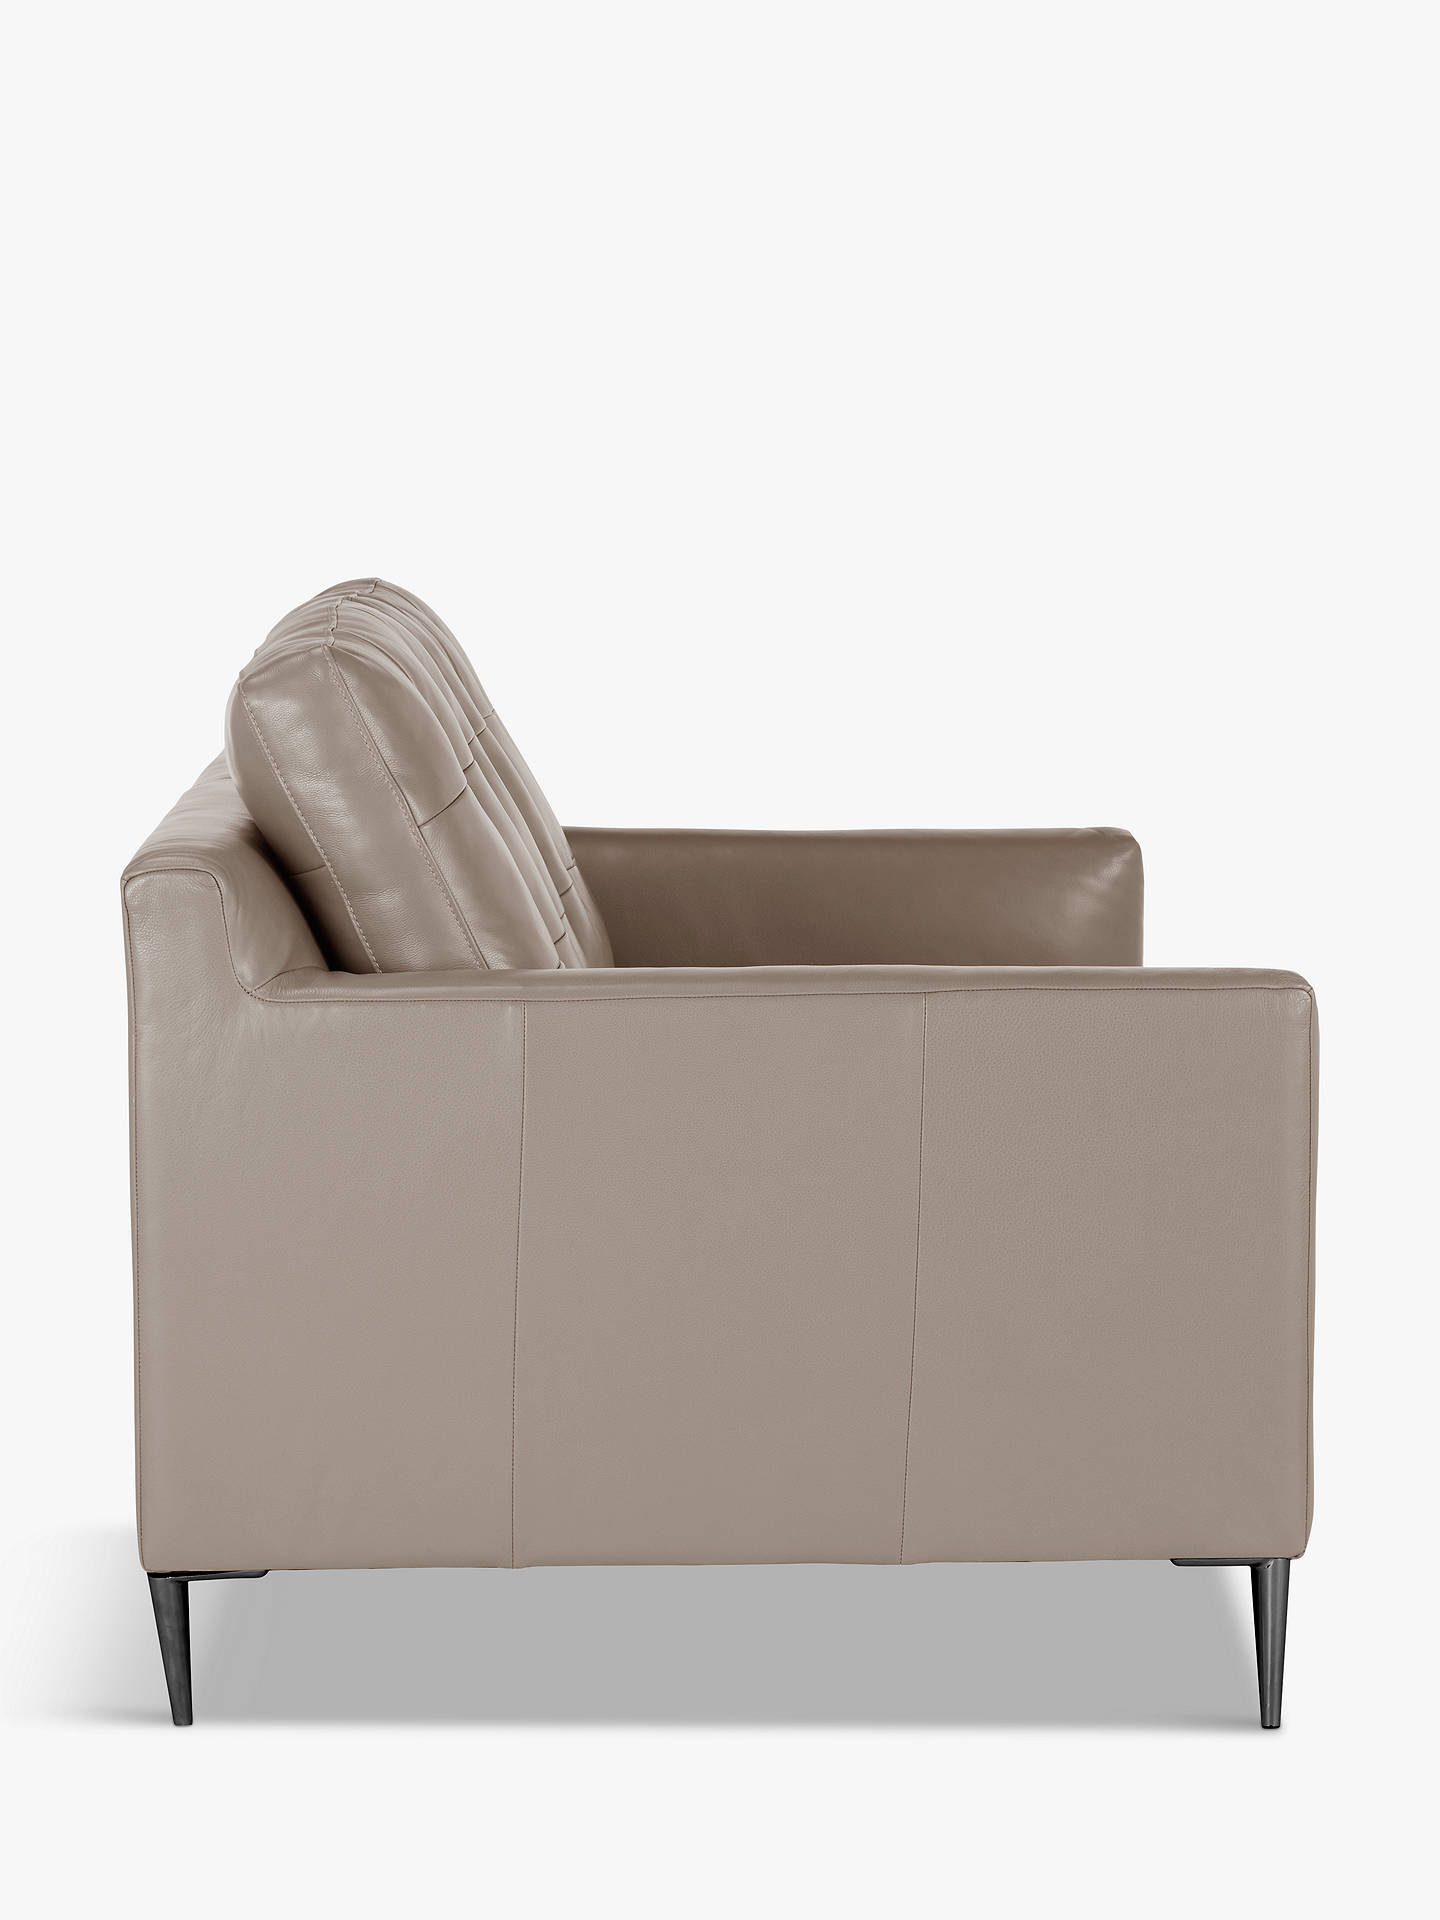 Buy John Lewis & Partners Draper Medium 2 Seater Leather Sofa, Metal Leg, Nature Putty Online at johnlewis.com